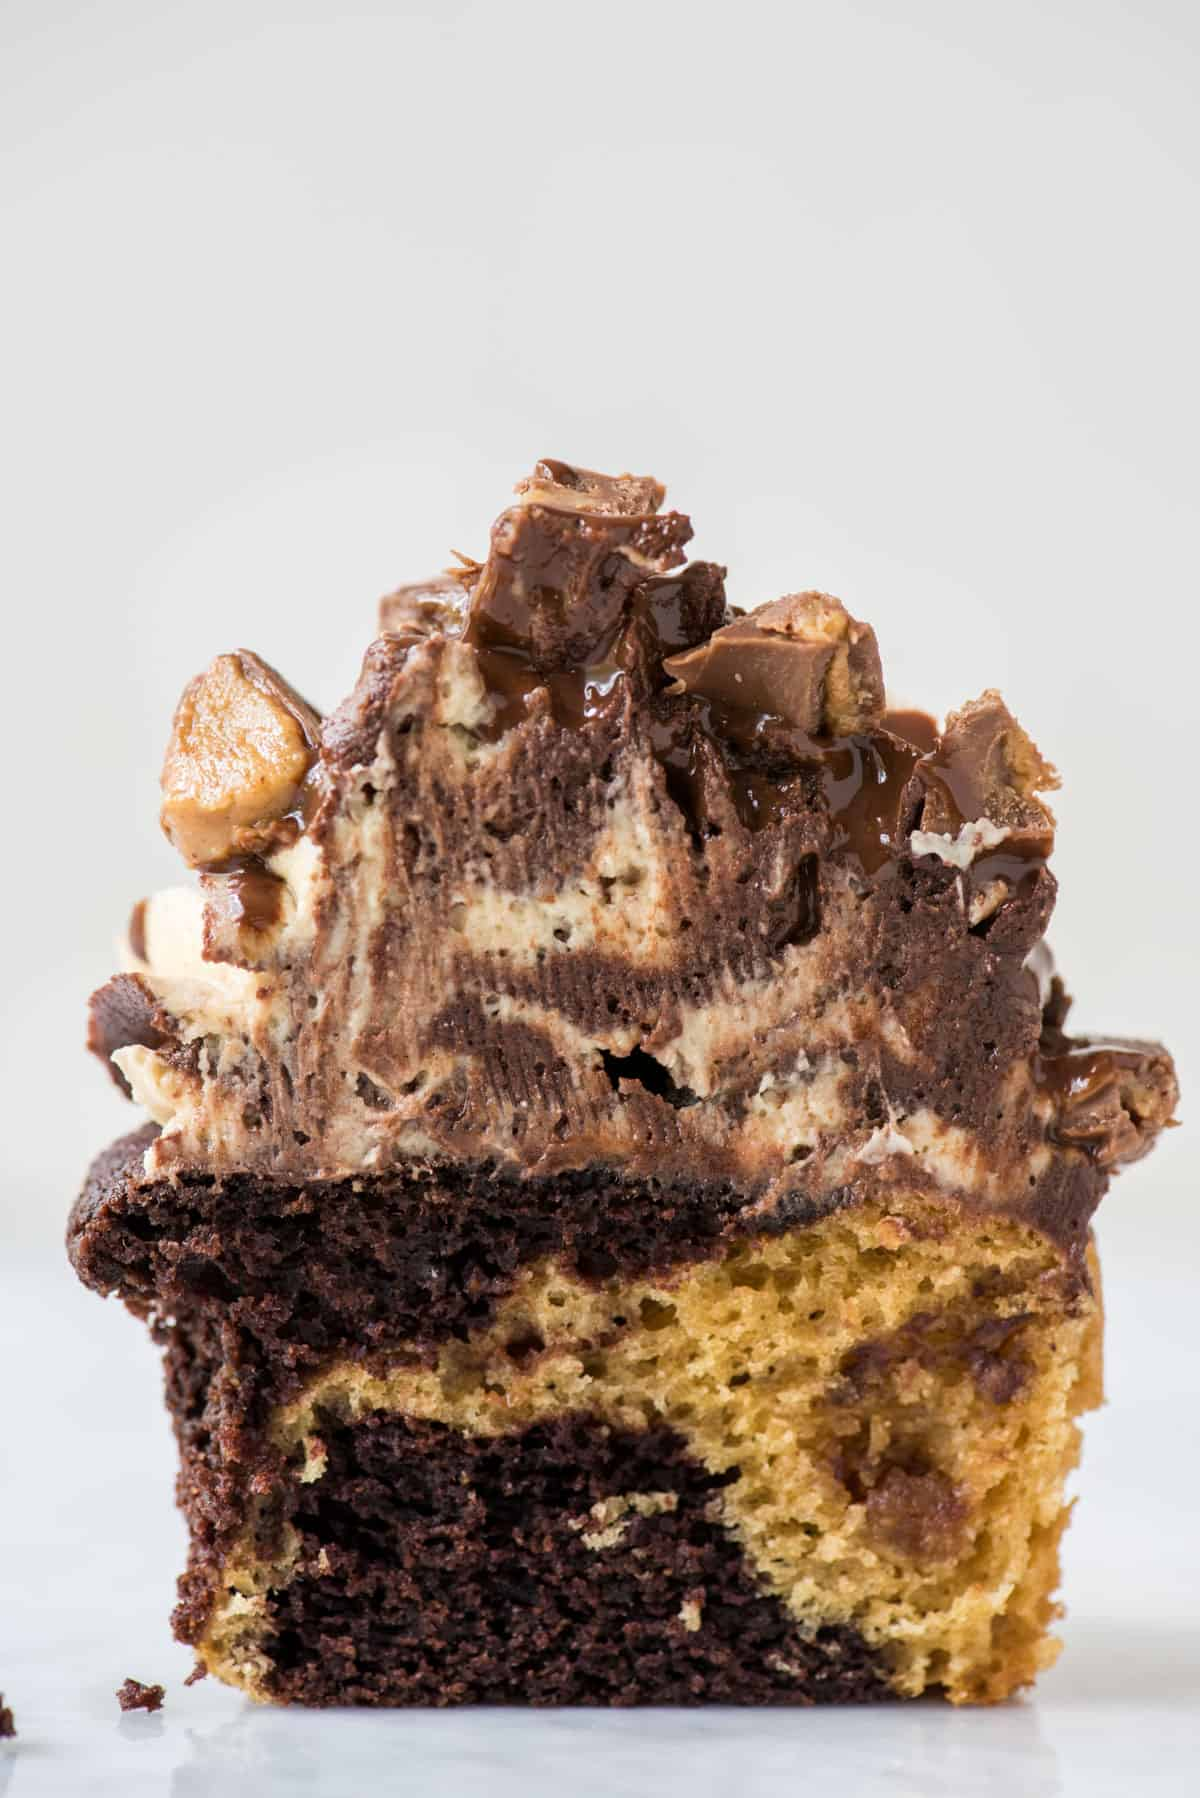 chocolate peanut butter cupcake with swirled chocolate peanut butter frosting cut in half on white background